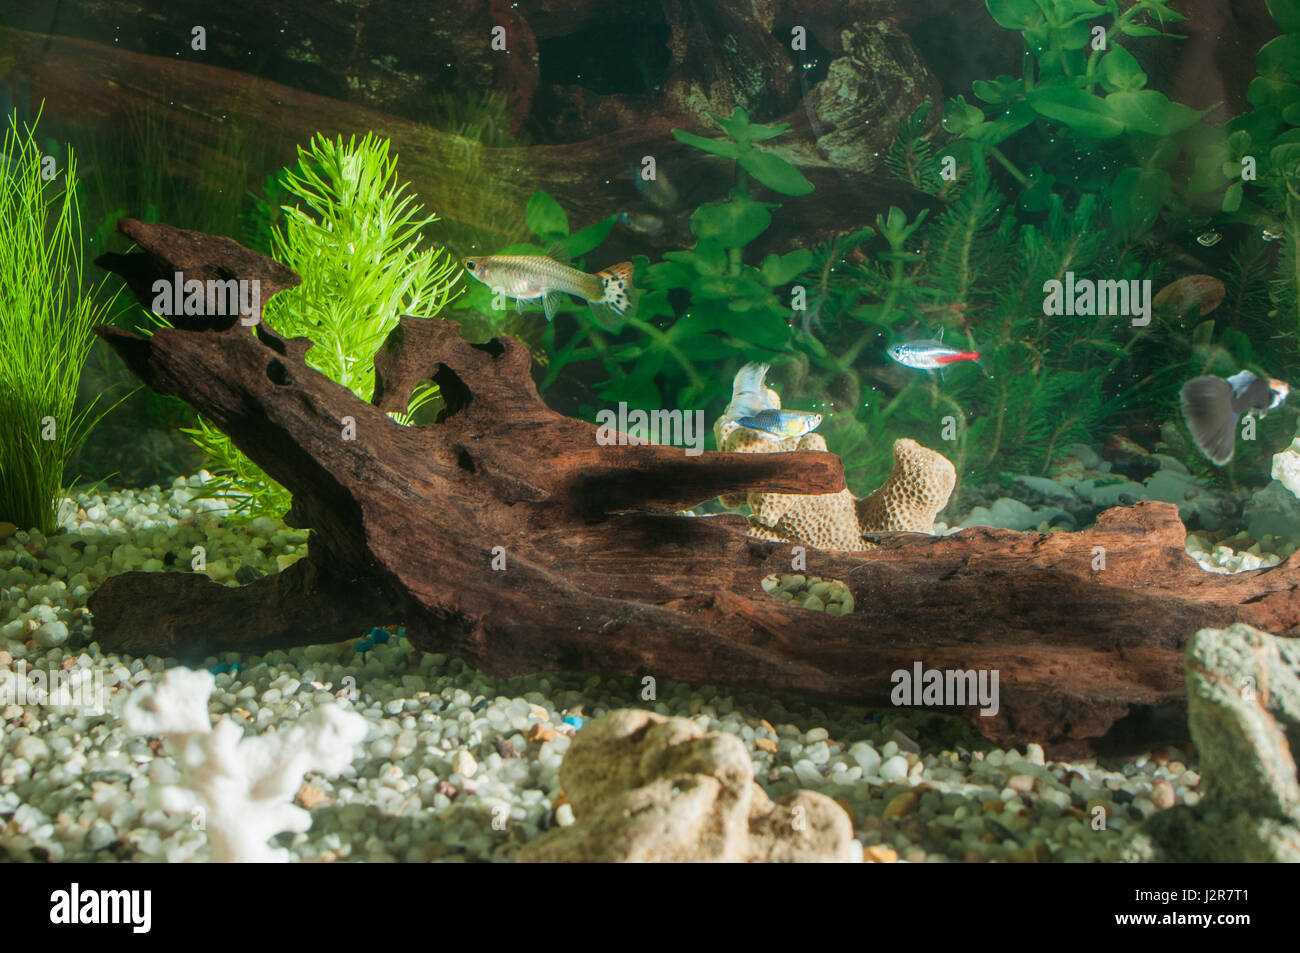 Freshwater aquarium fish cape town - Aquarium With Many Fish And Natural Plants And Sand Tropical Fishes Aquarium With Green